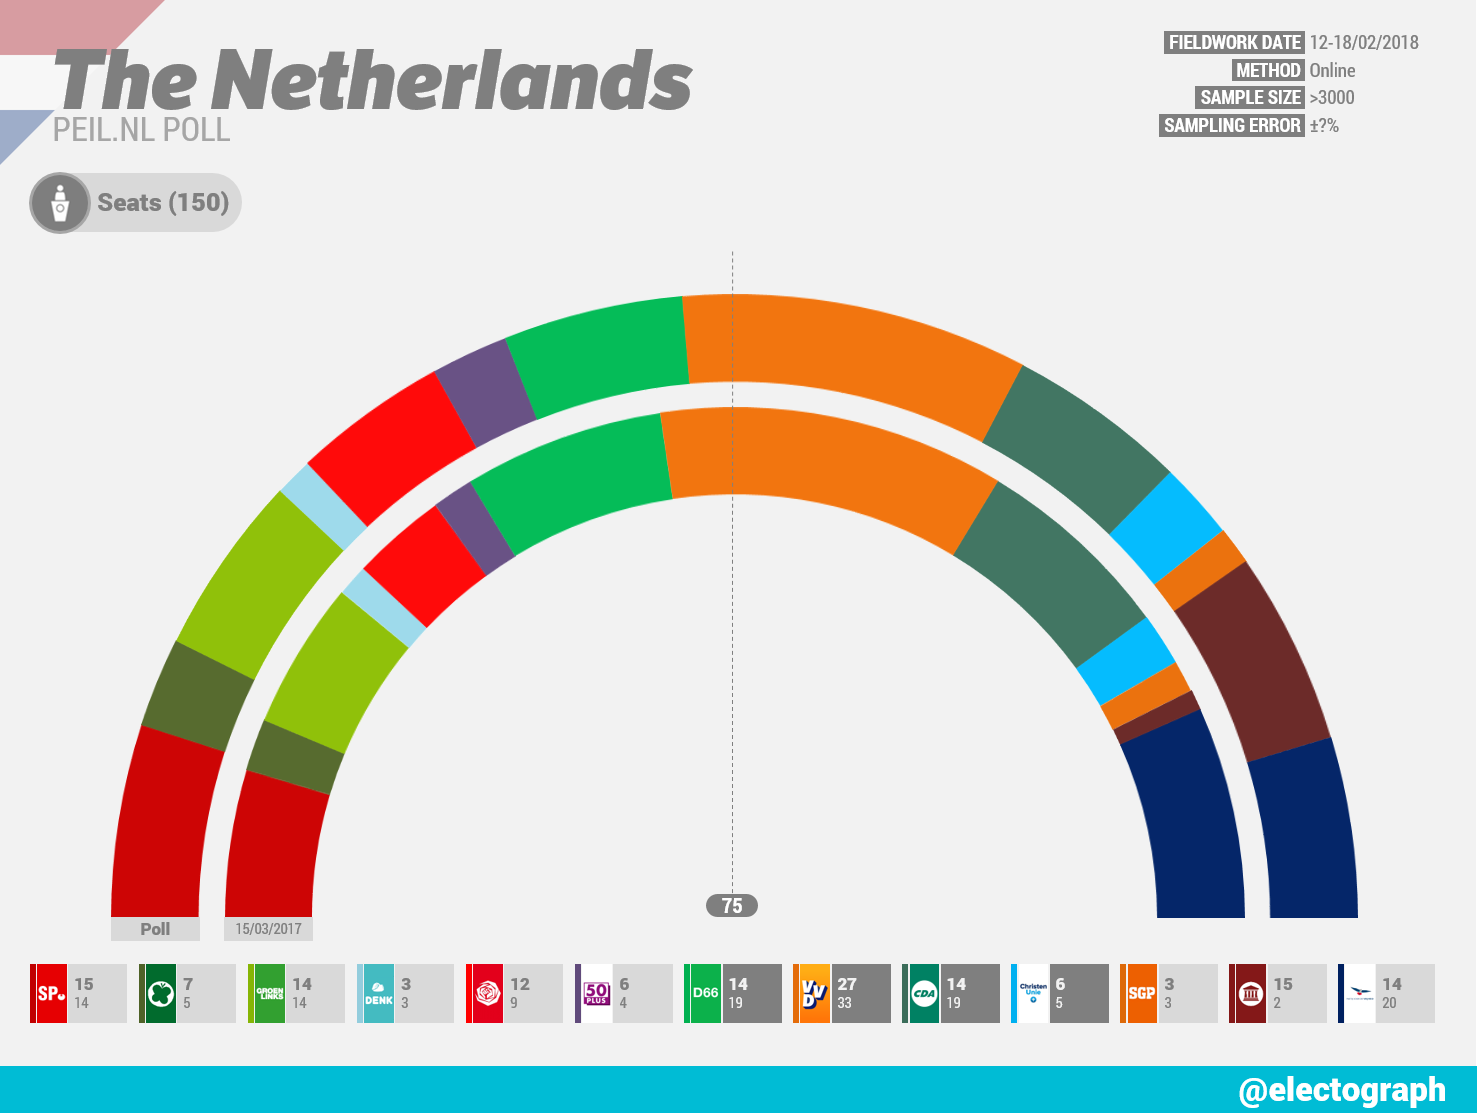 THE NETHERLANDS Peil.nl poll chart, February 2018